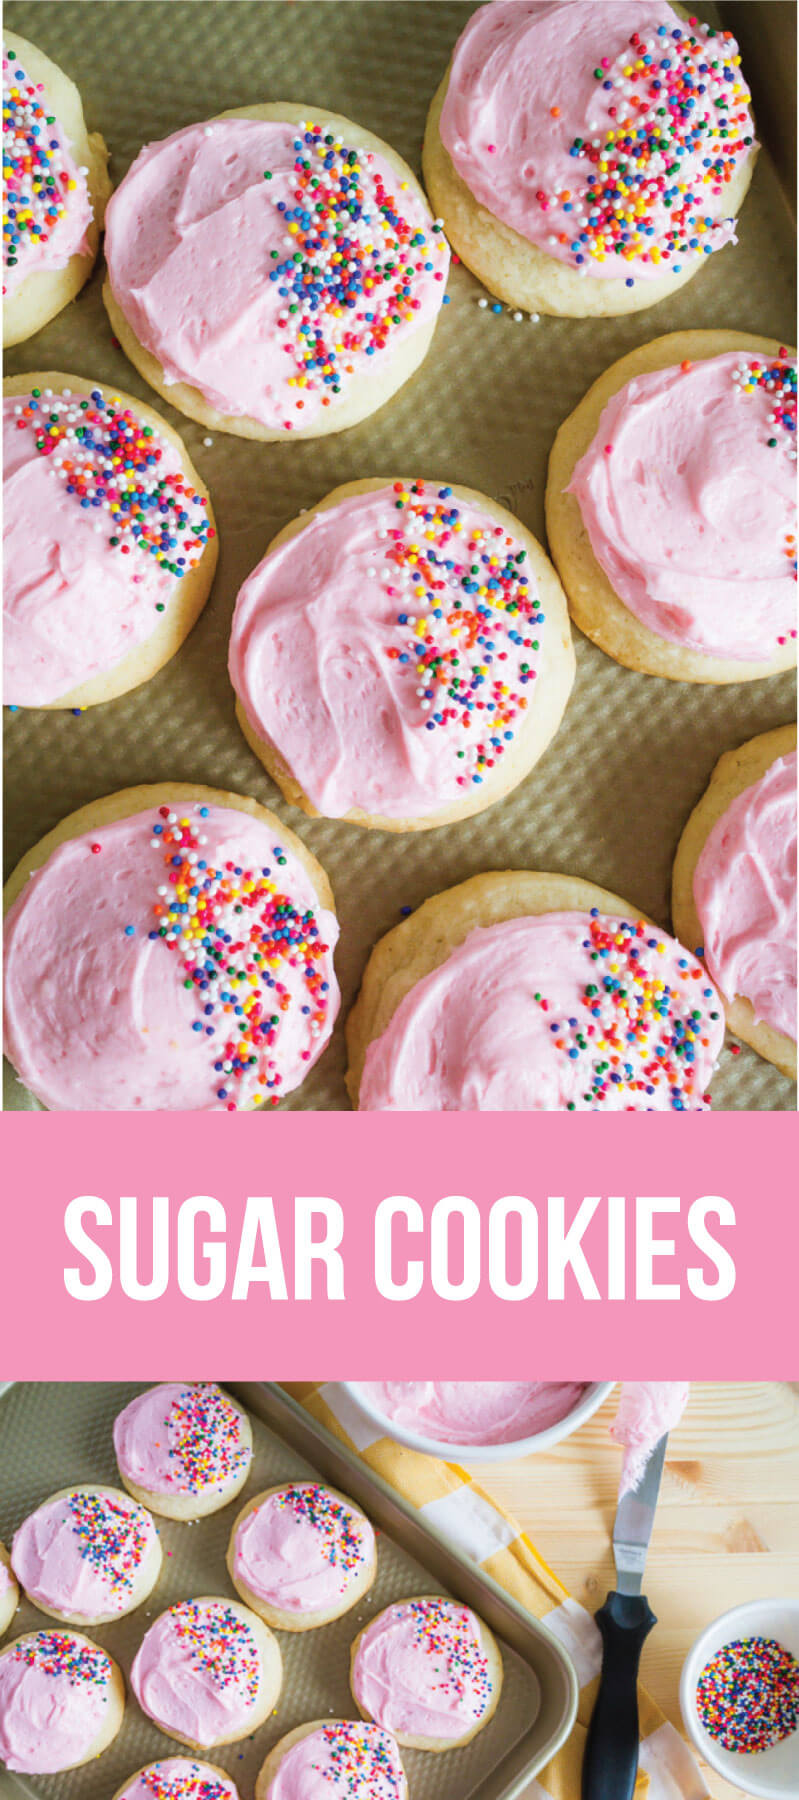 Sugar Cookies - a recipe that you have to try asap!  www.thirtyhandmadedays.com